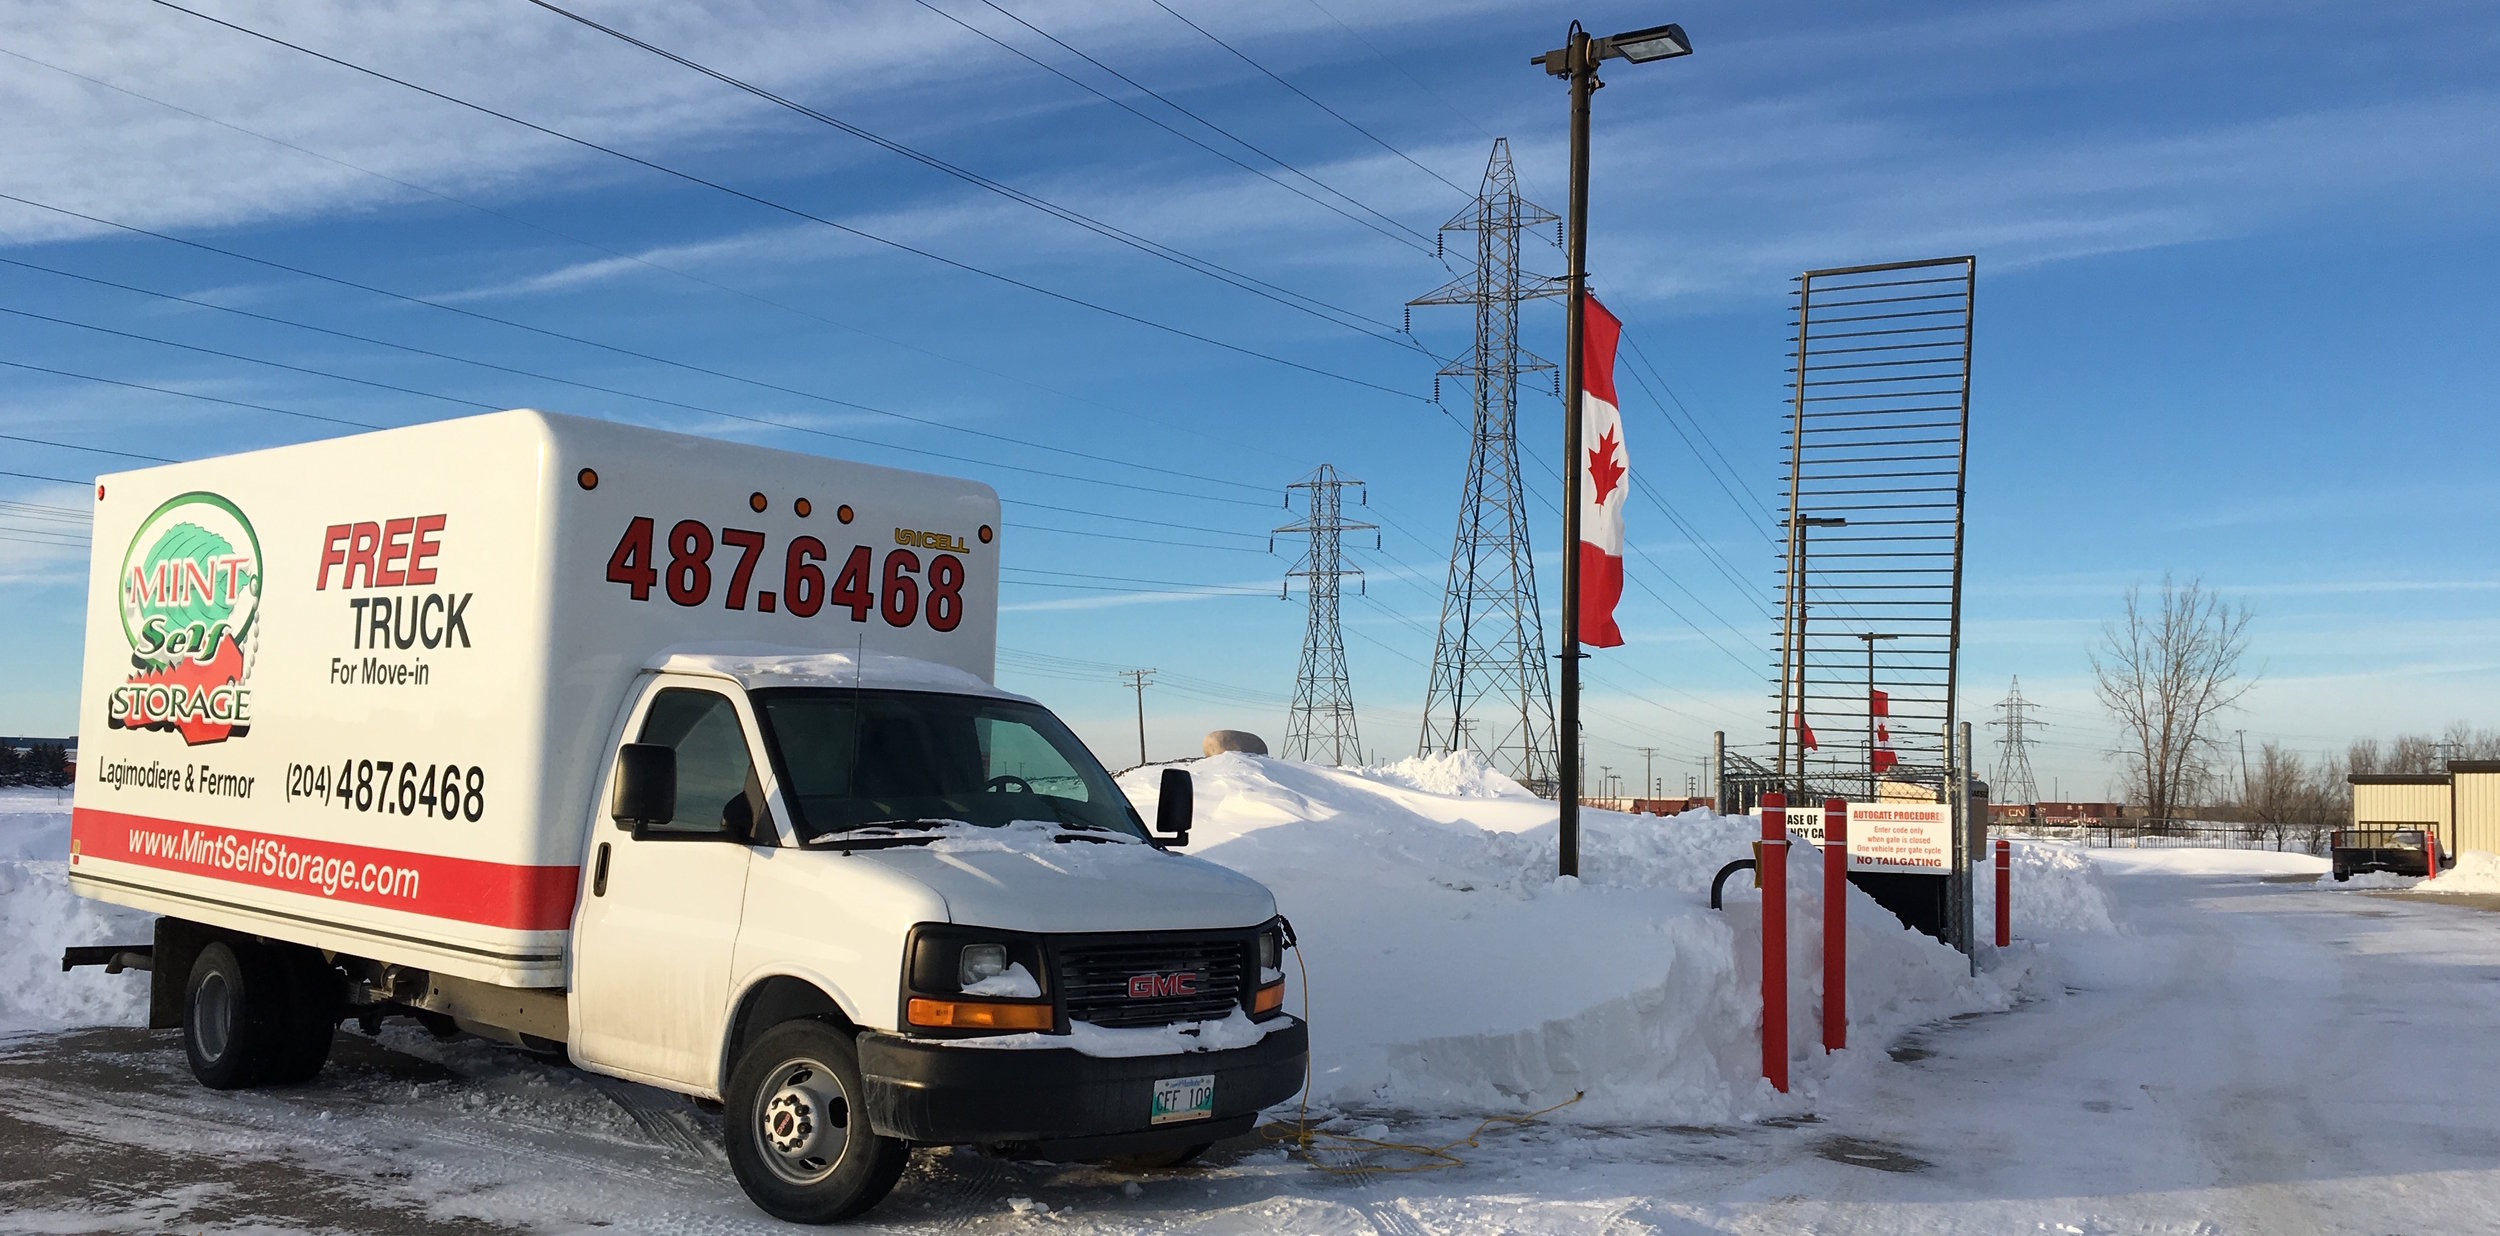 To assist with your moving needs a  FREE rental of 16-foot cube van is available for all Winnipeg self storage customers to move- in.  Simply pay the gas and insurance of $20 and start moving in!